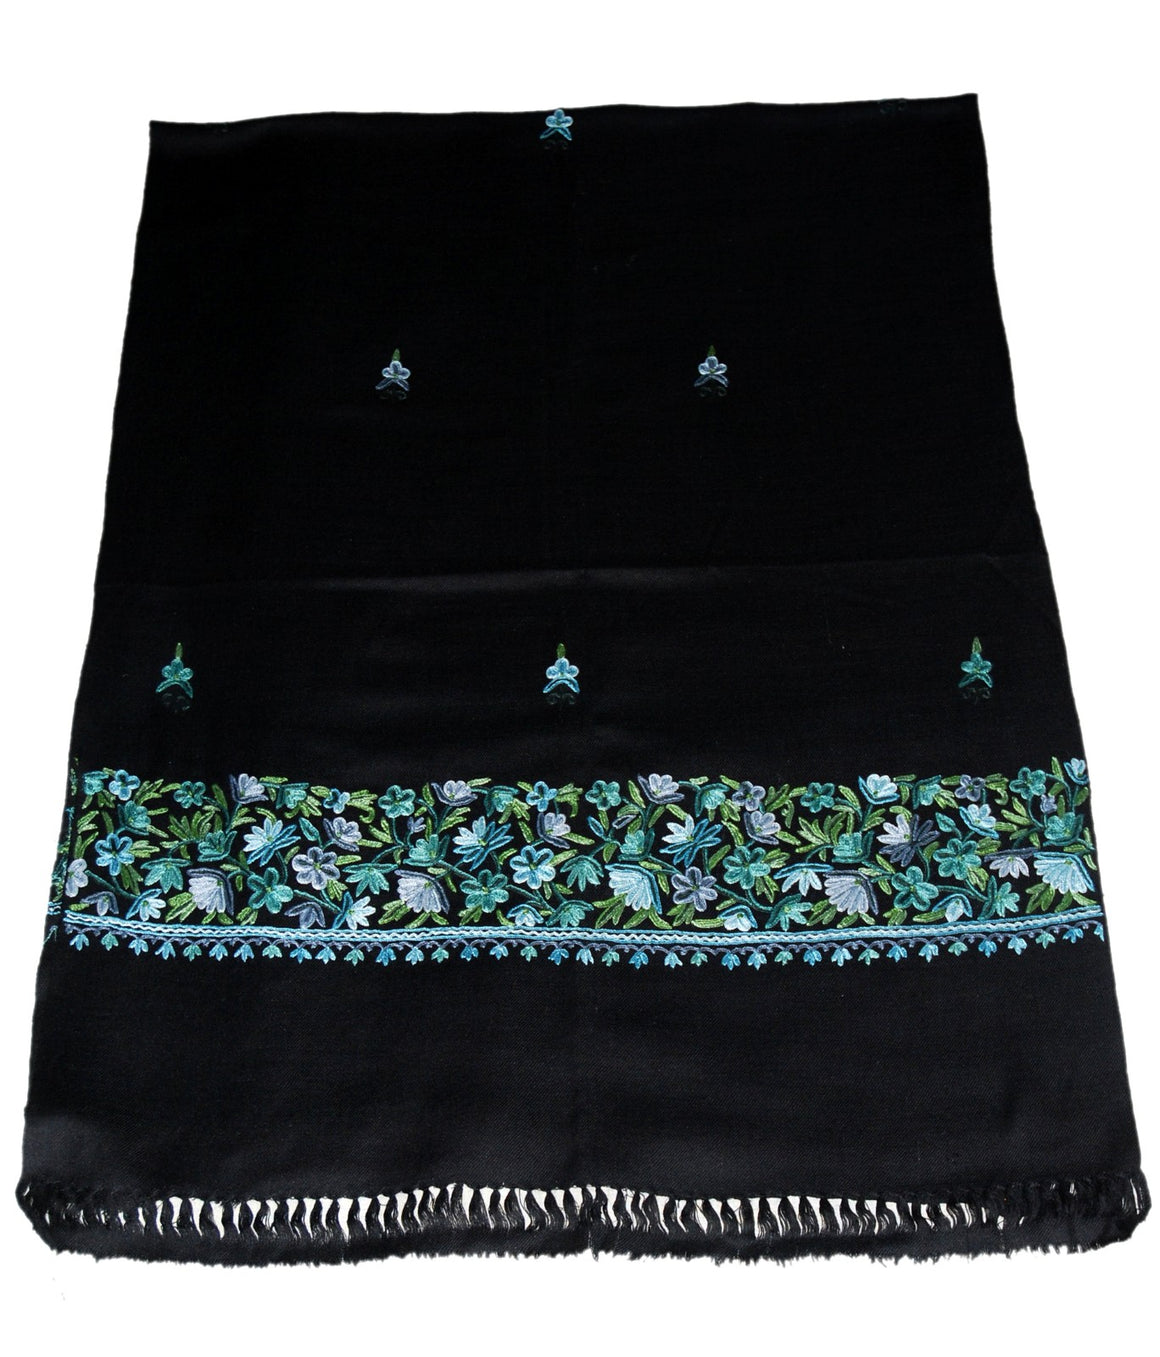 Embroidered Wool Shawl Scarf Black, Blue Green Embroidery #WS-131